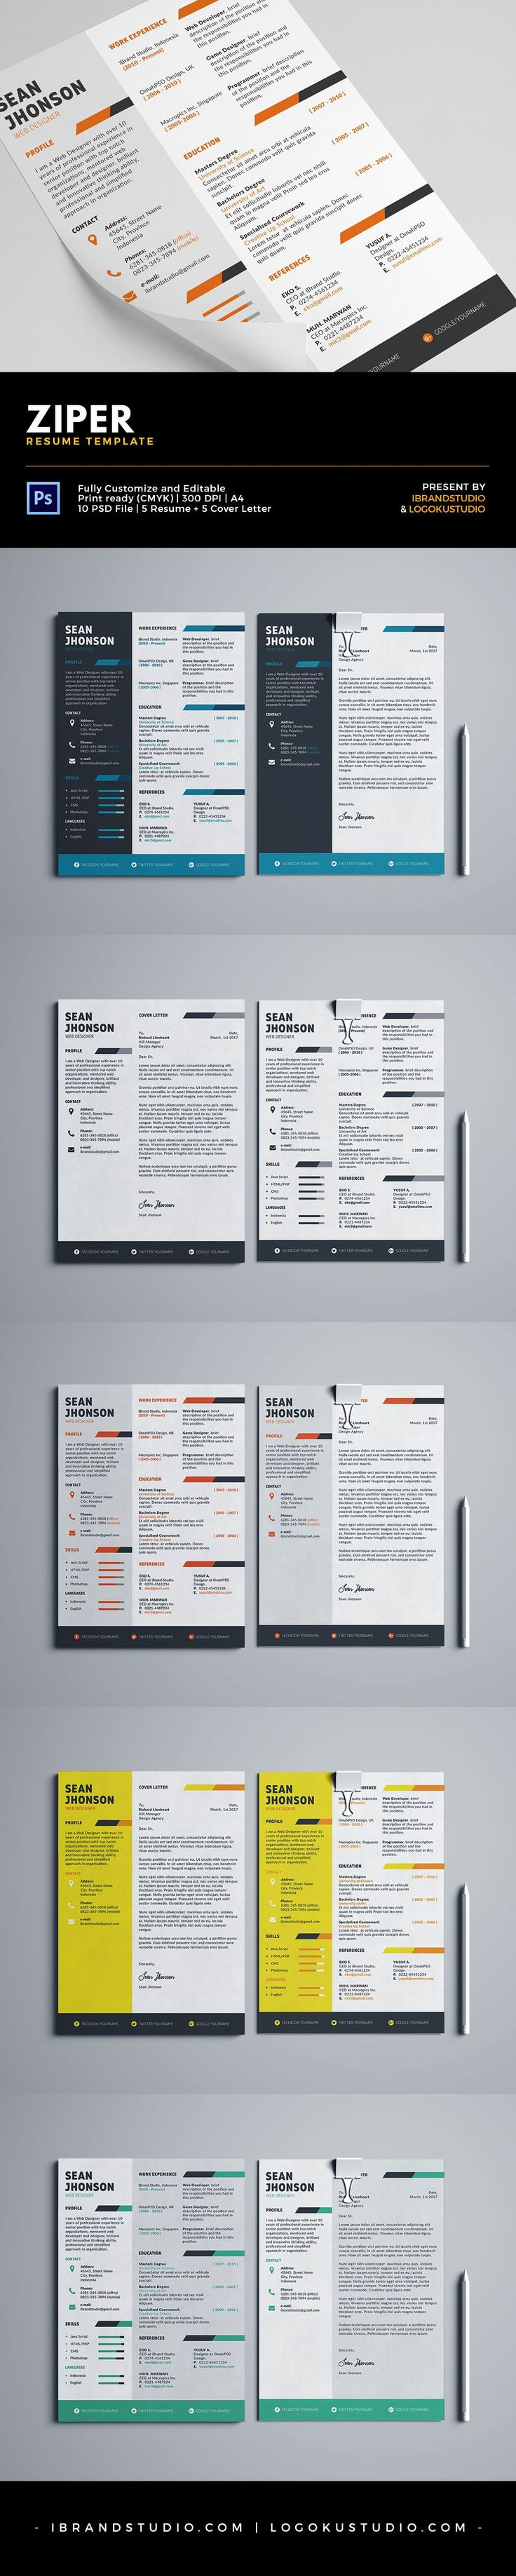 letter format for application%0A Free Ziper Resume Template and Cover Letter    Styles  PSD